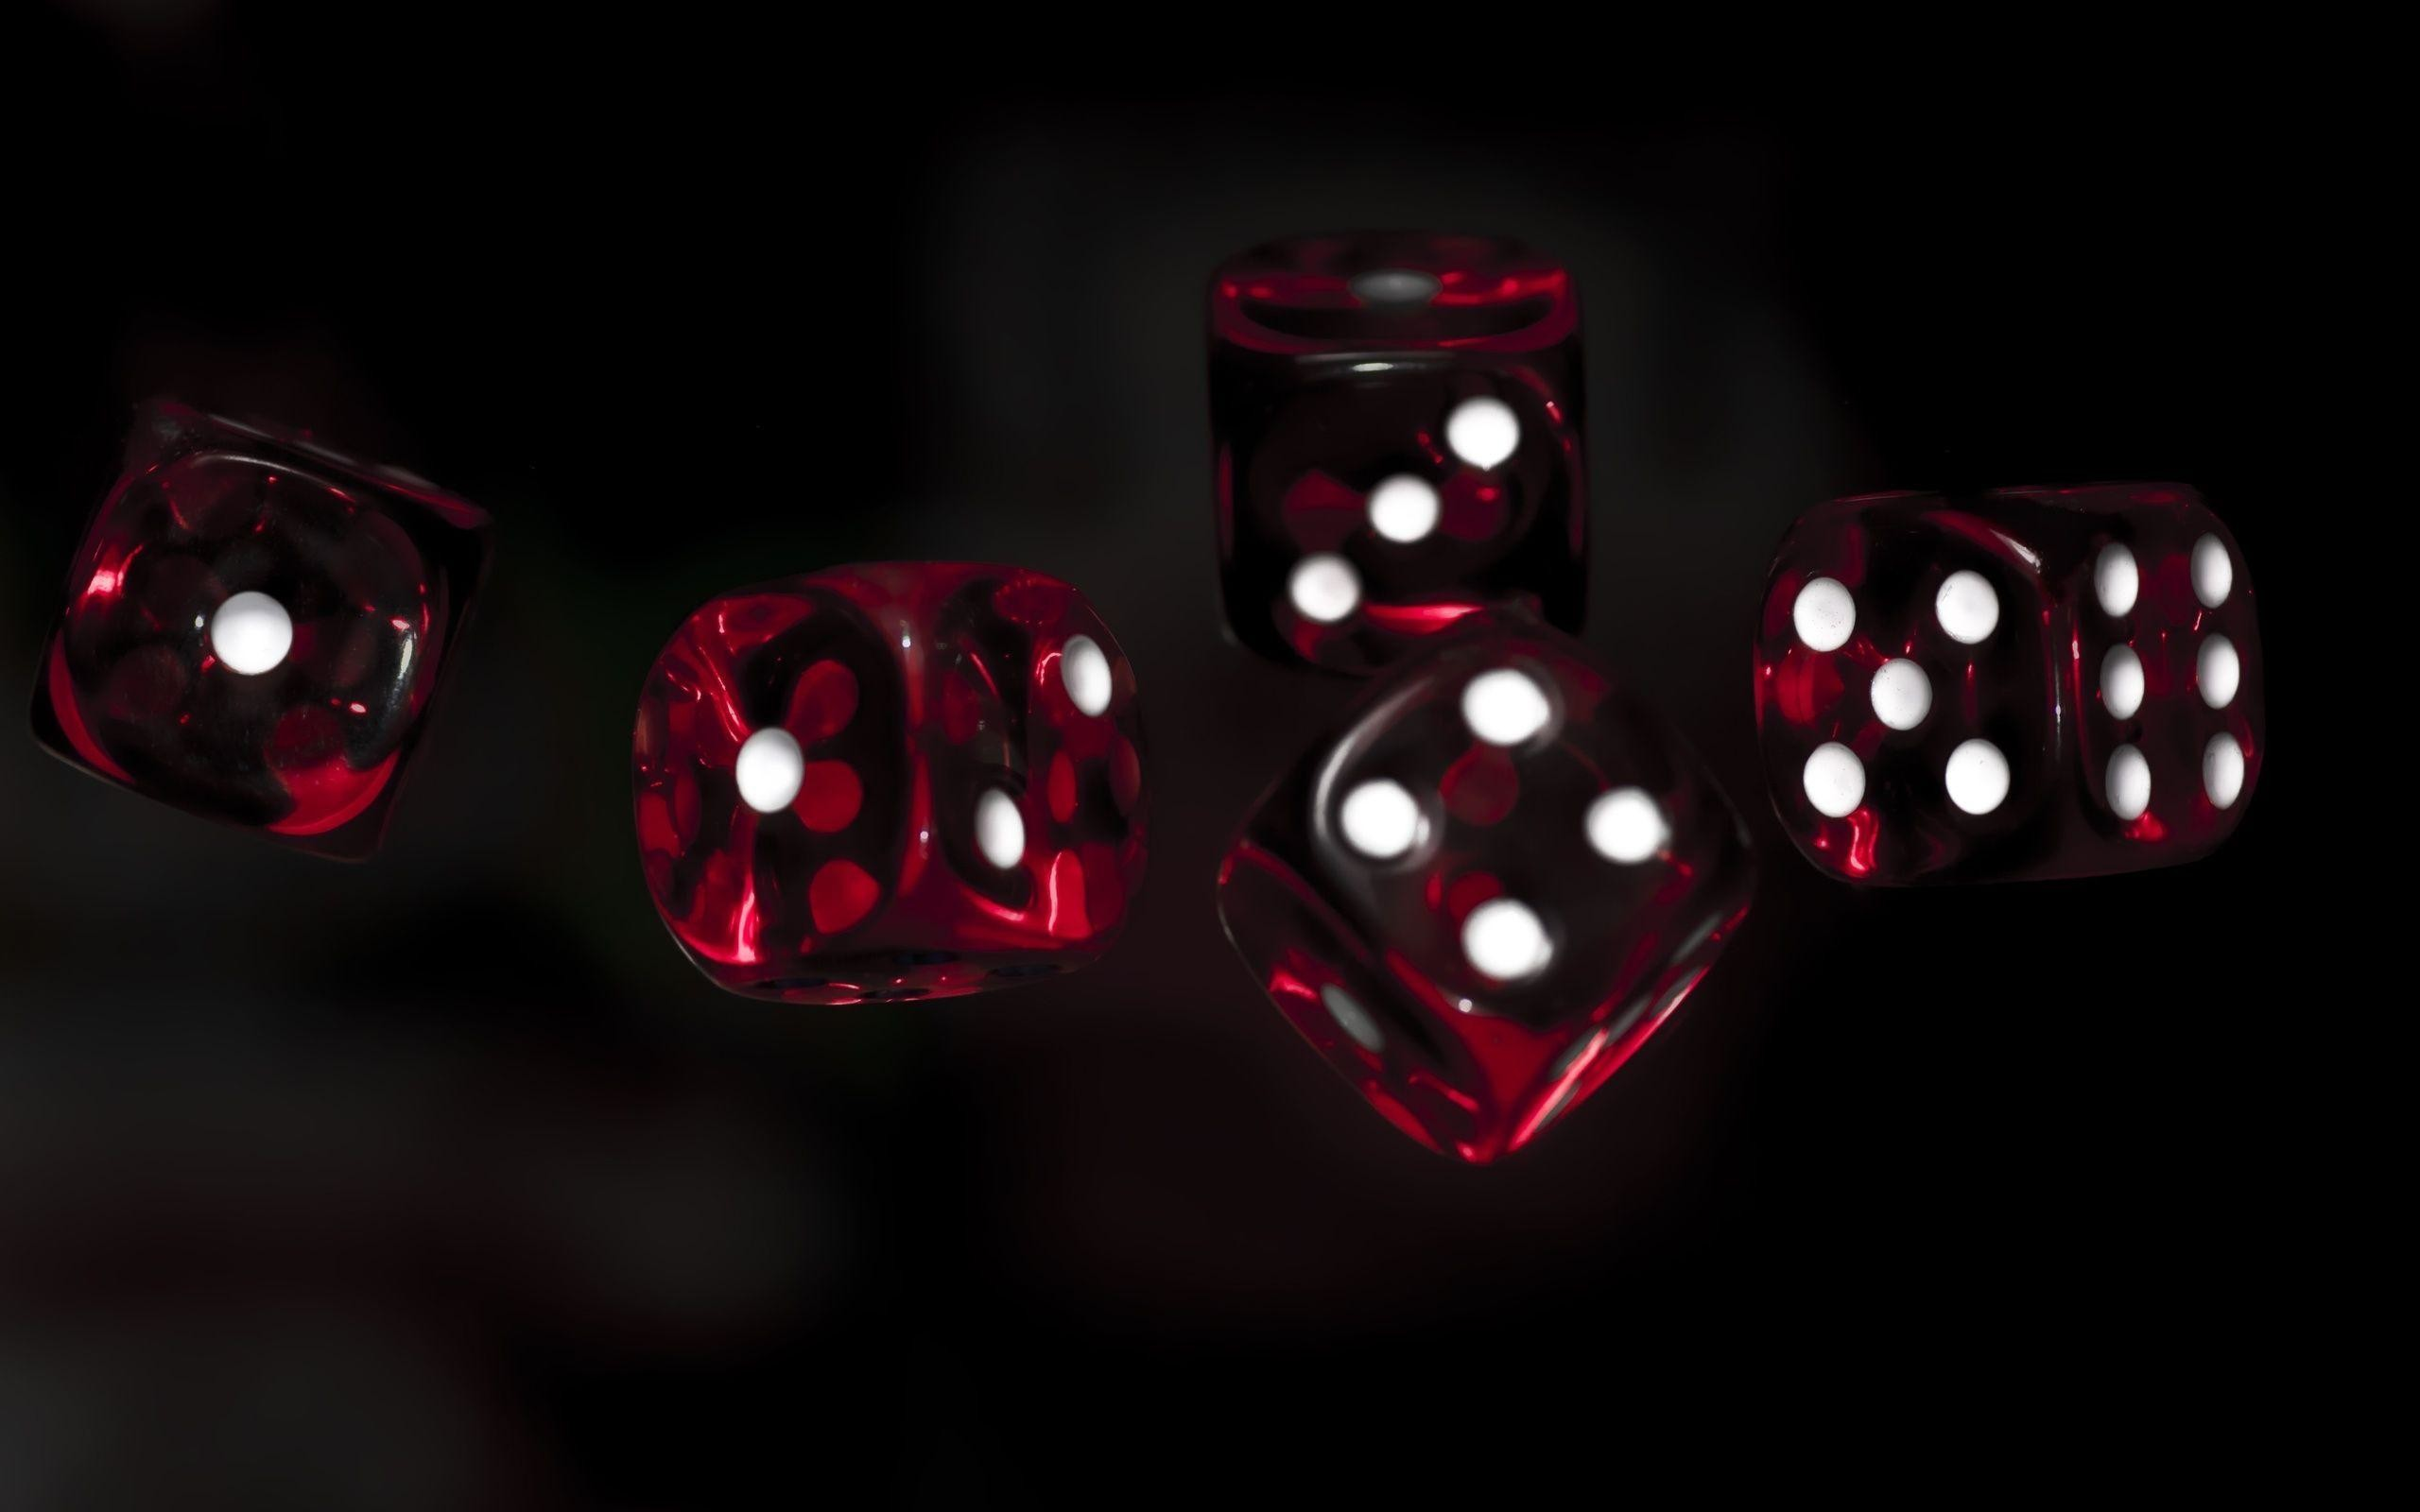 Red Dice Wallpaper Pictures 641289 #6989 Wallpaper | Cool .